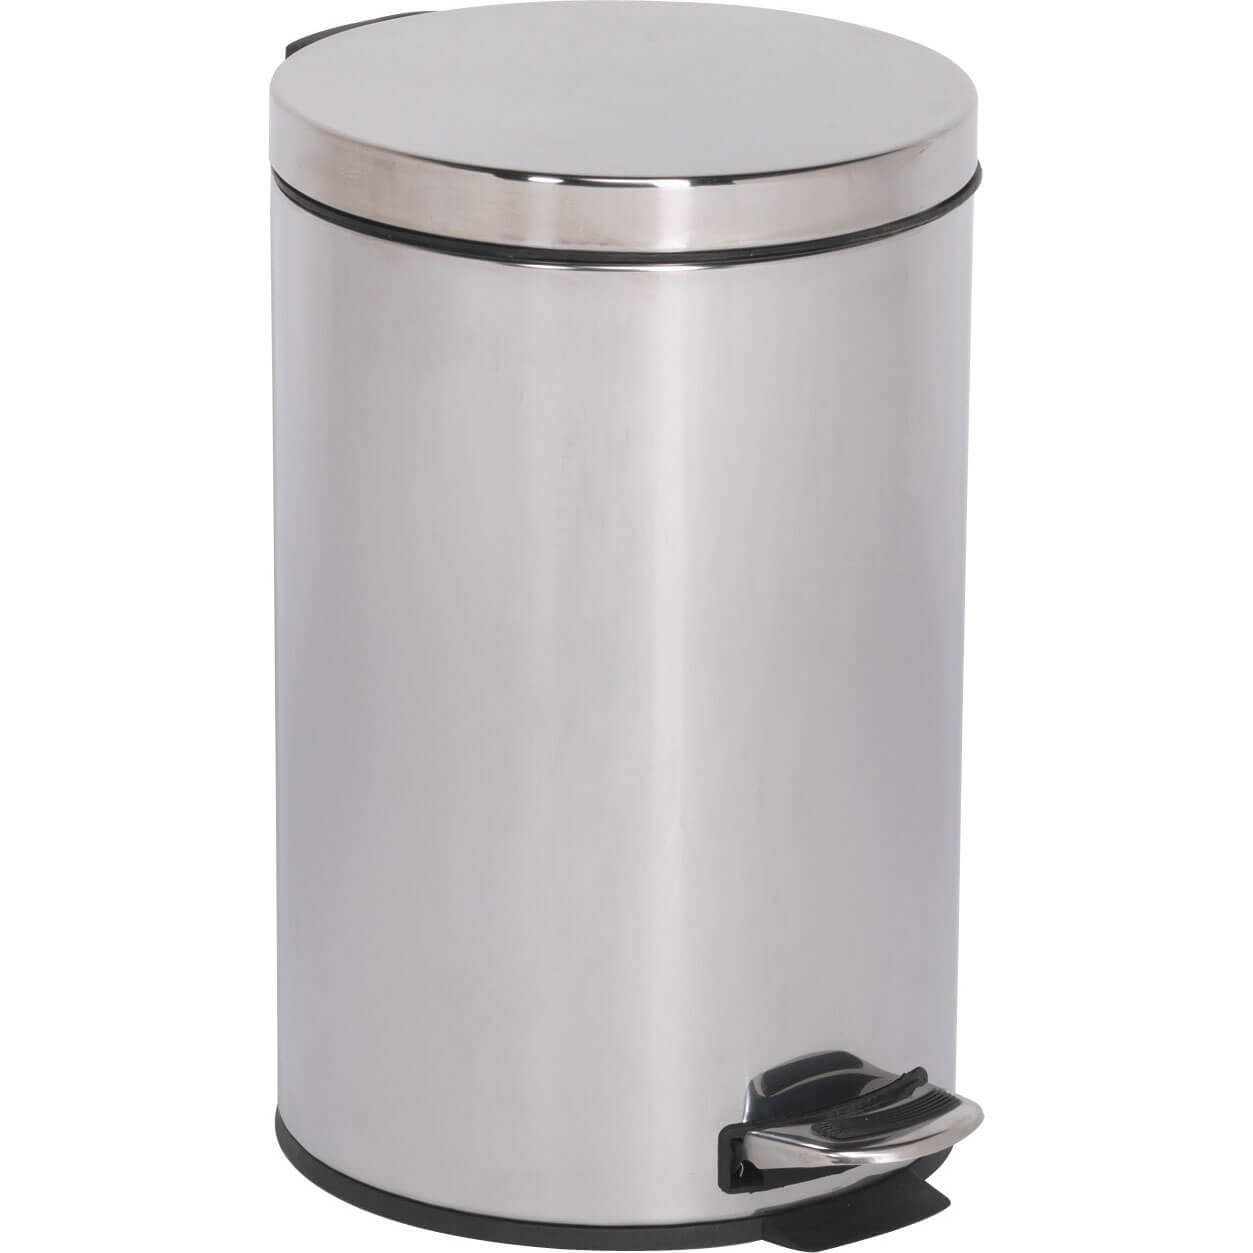 Image of Sealey Stainless Steel Pedal Bin 12l